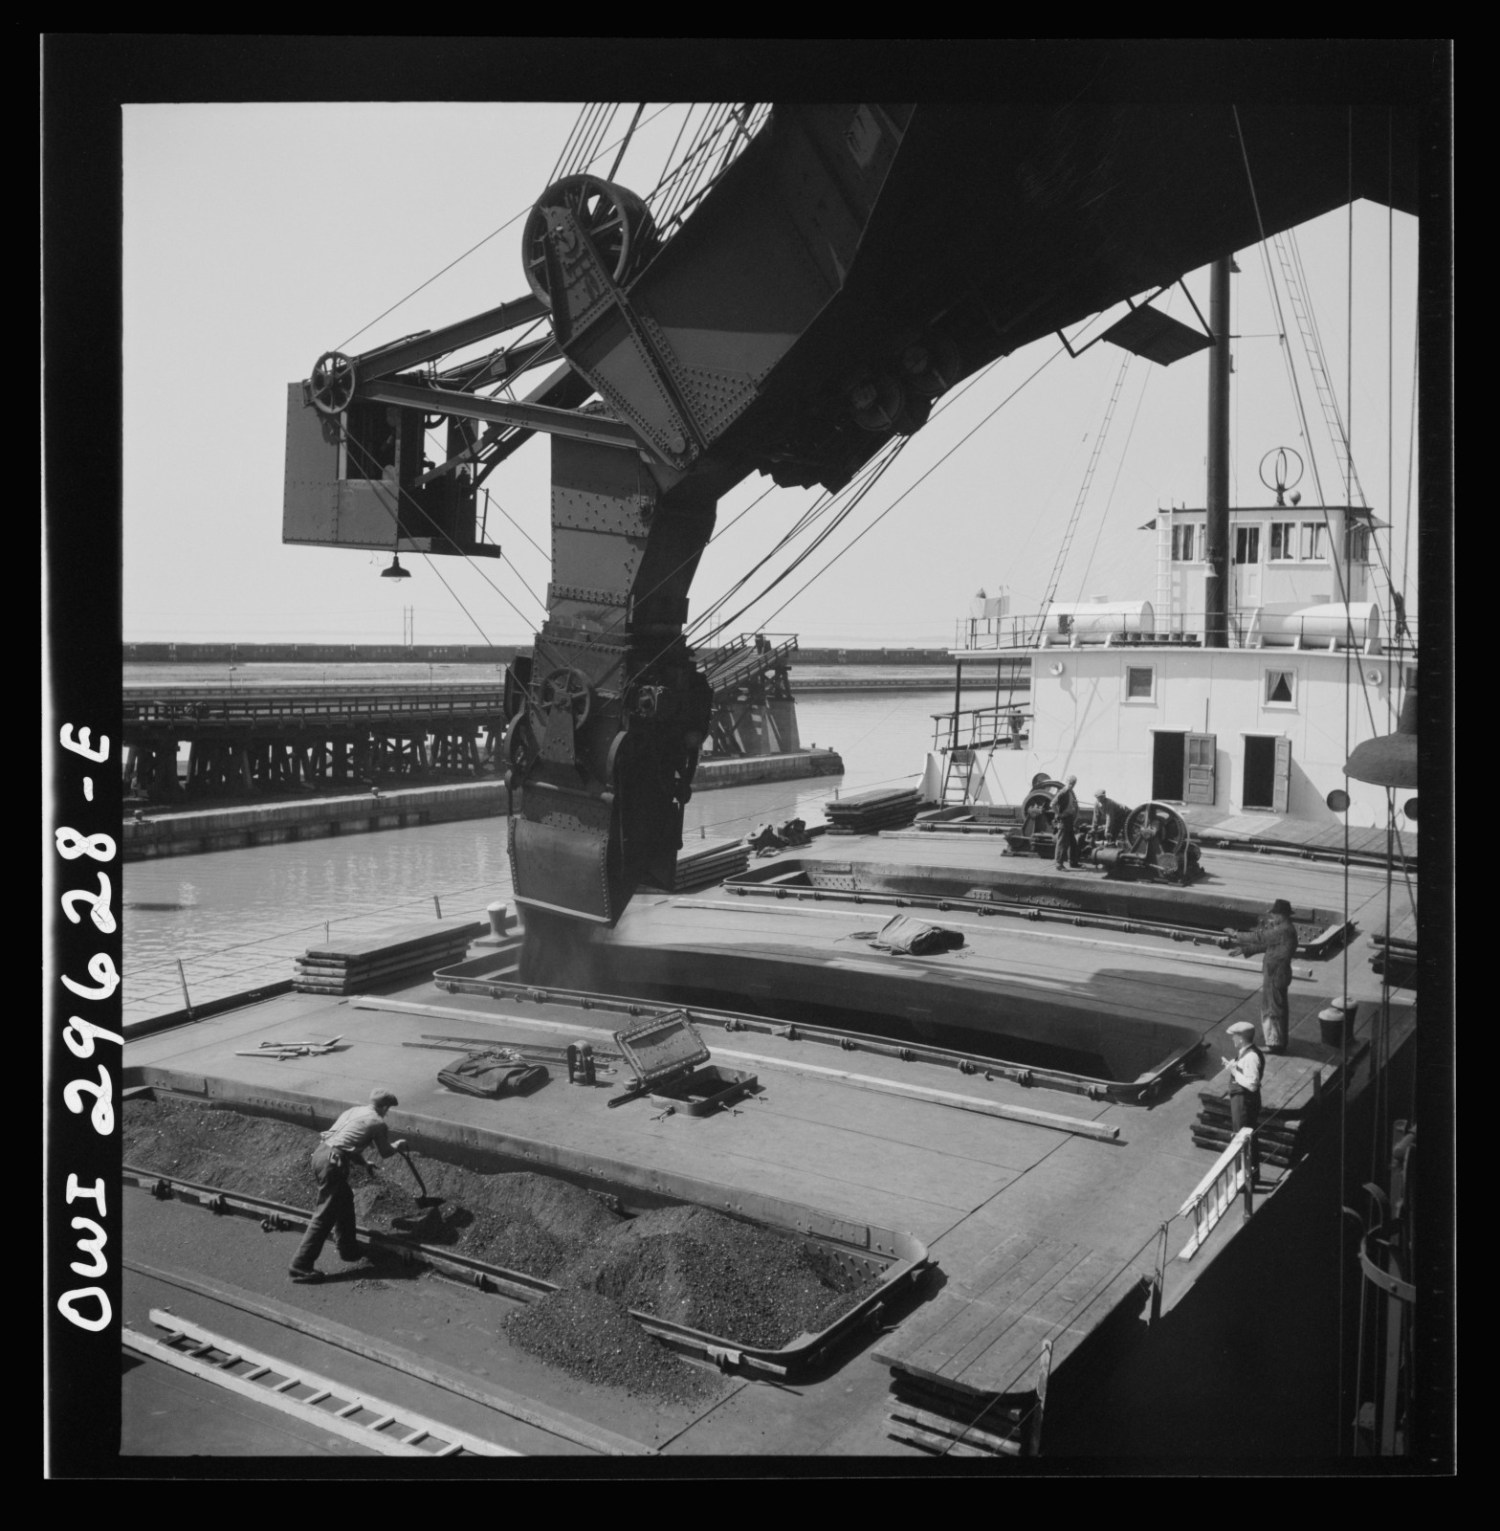 Coal is loaded onto a lake freighter at the Pennsylvania Railroad docks in Sandusky, Ohio in May, 1943. Photo Credit: Jack Delano / Library of Congress, Prints & Photographs Division, FSA/OWI Collection [LC-DIG-fsa-8d29908]